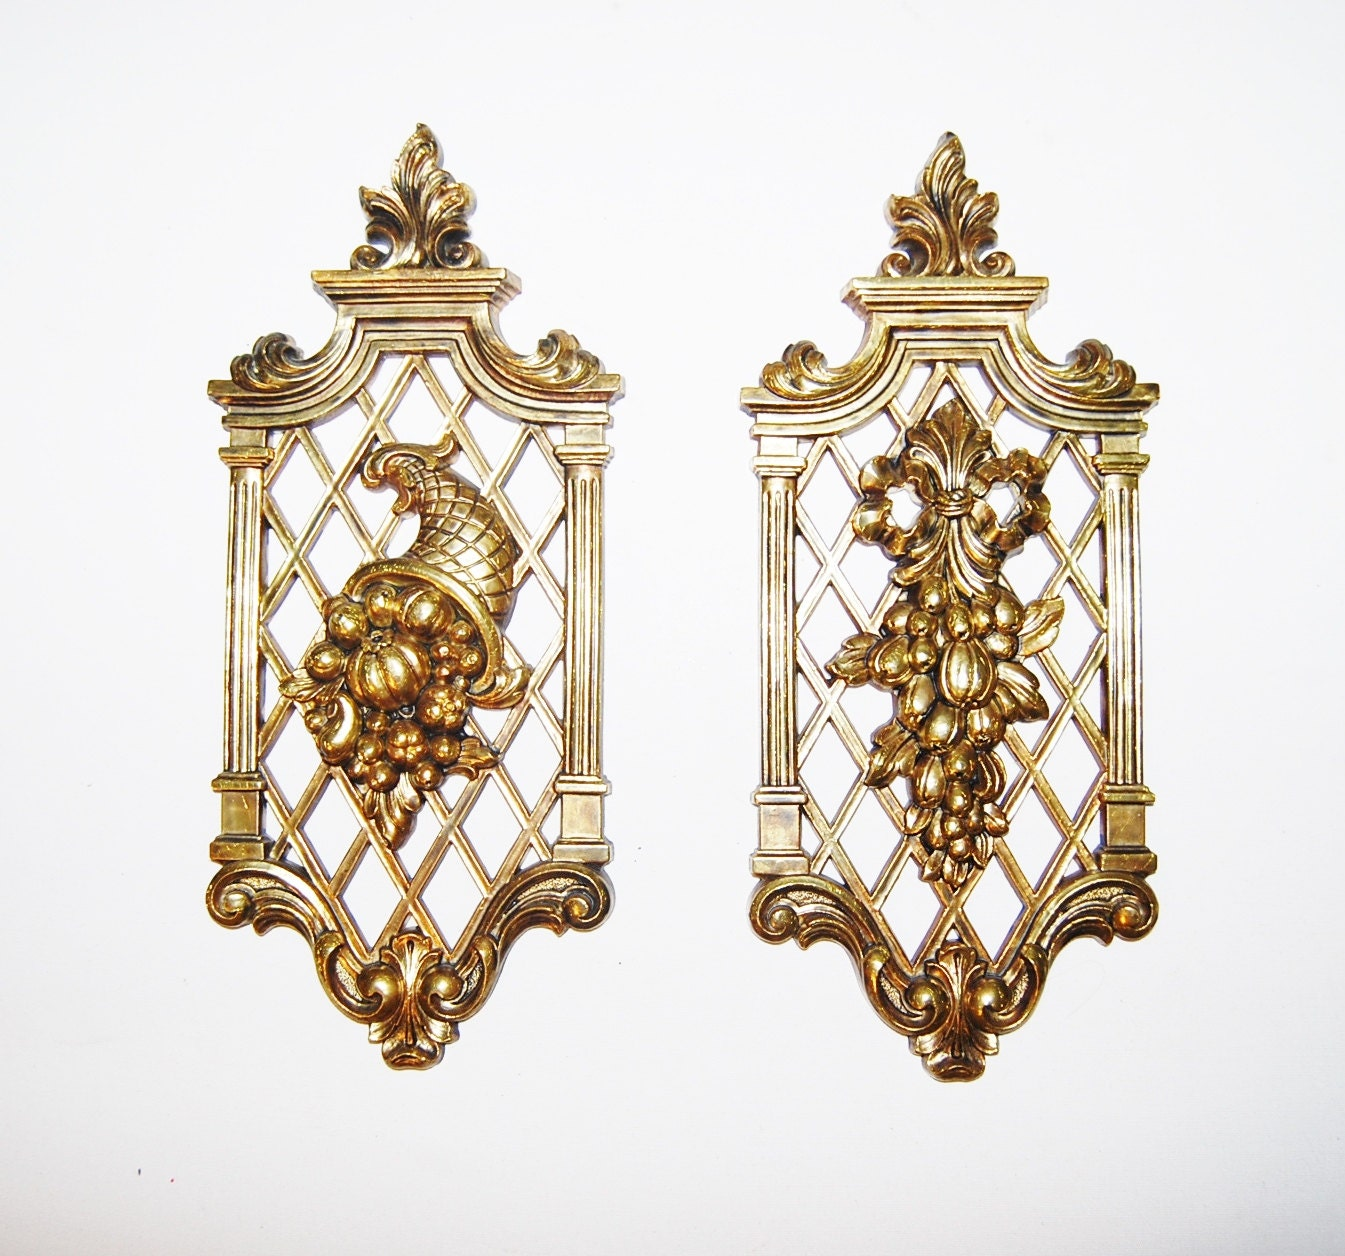 Gold R Wall Decor : Vintage hollywood regency gold wall decor